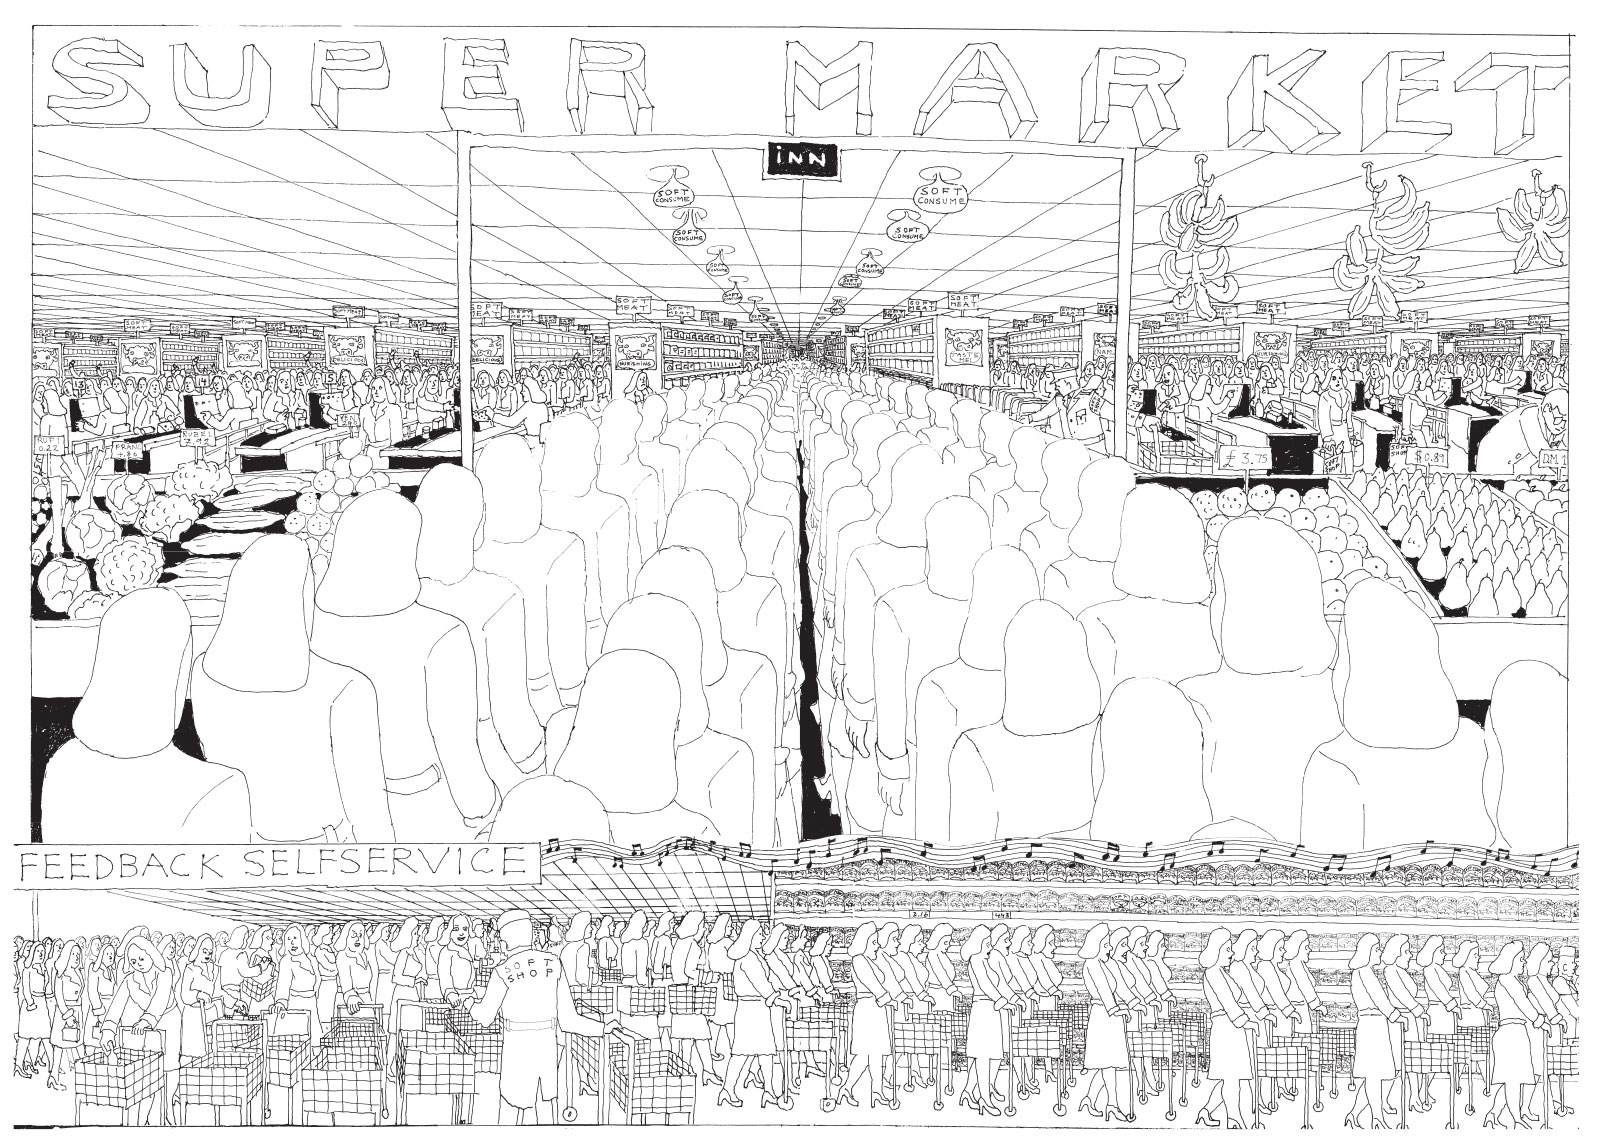 A spread from <em>Soft City</em> by Pushwagner; click on image to enlarge